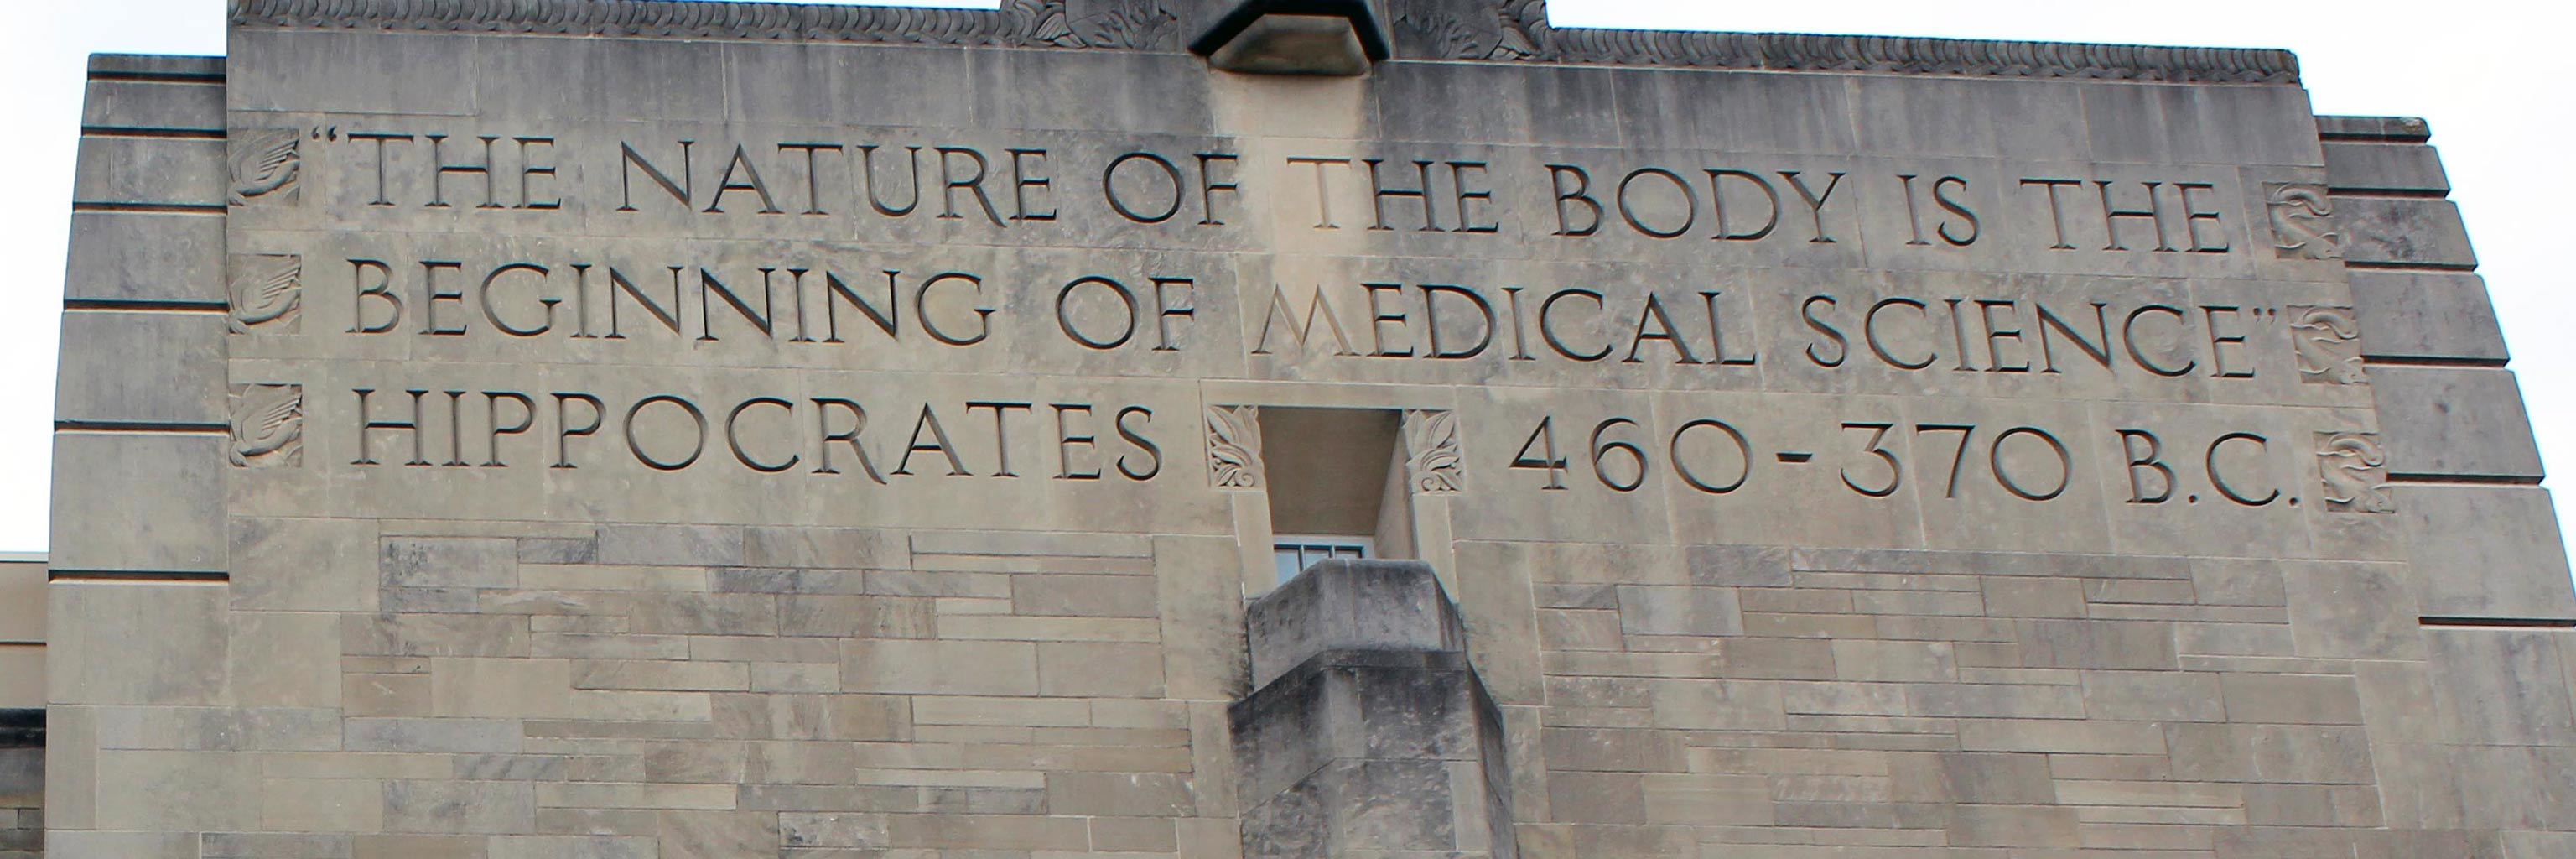 large stone building with carving, the nature of the body is the beginning of medical science, Hippocrates, 460-370 b.c.